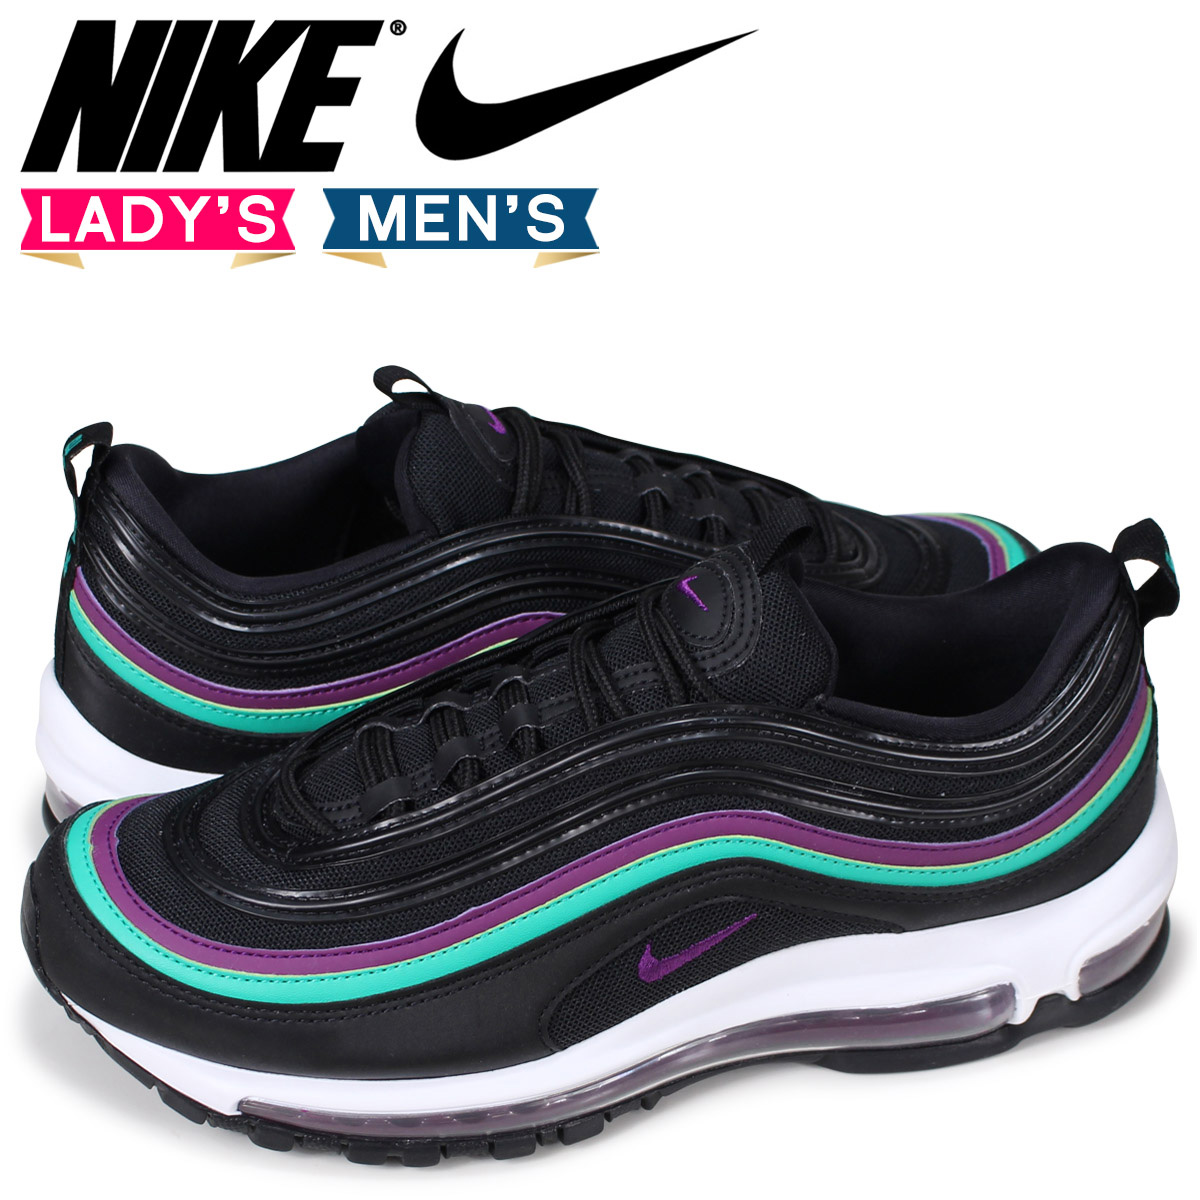 SneaK Online Shop  Nike NIKE Air Max 97 lady s men s sneakers WMNS ... 37655392204c